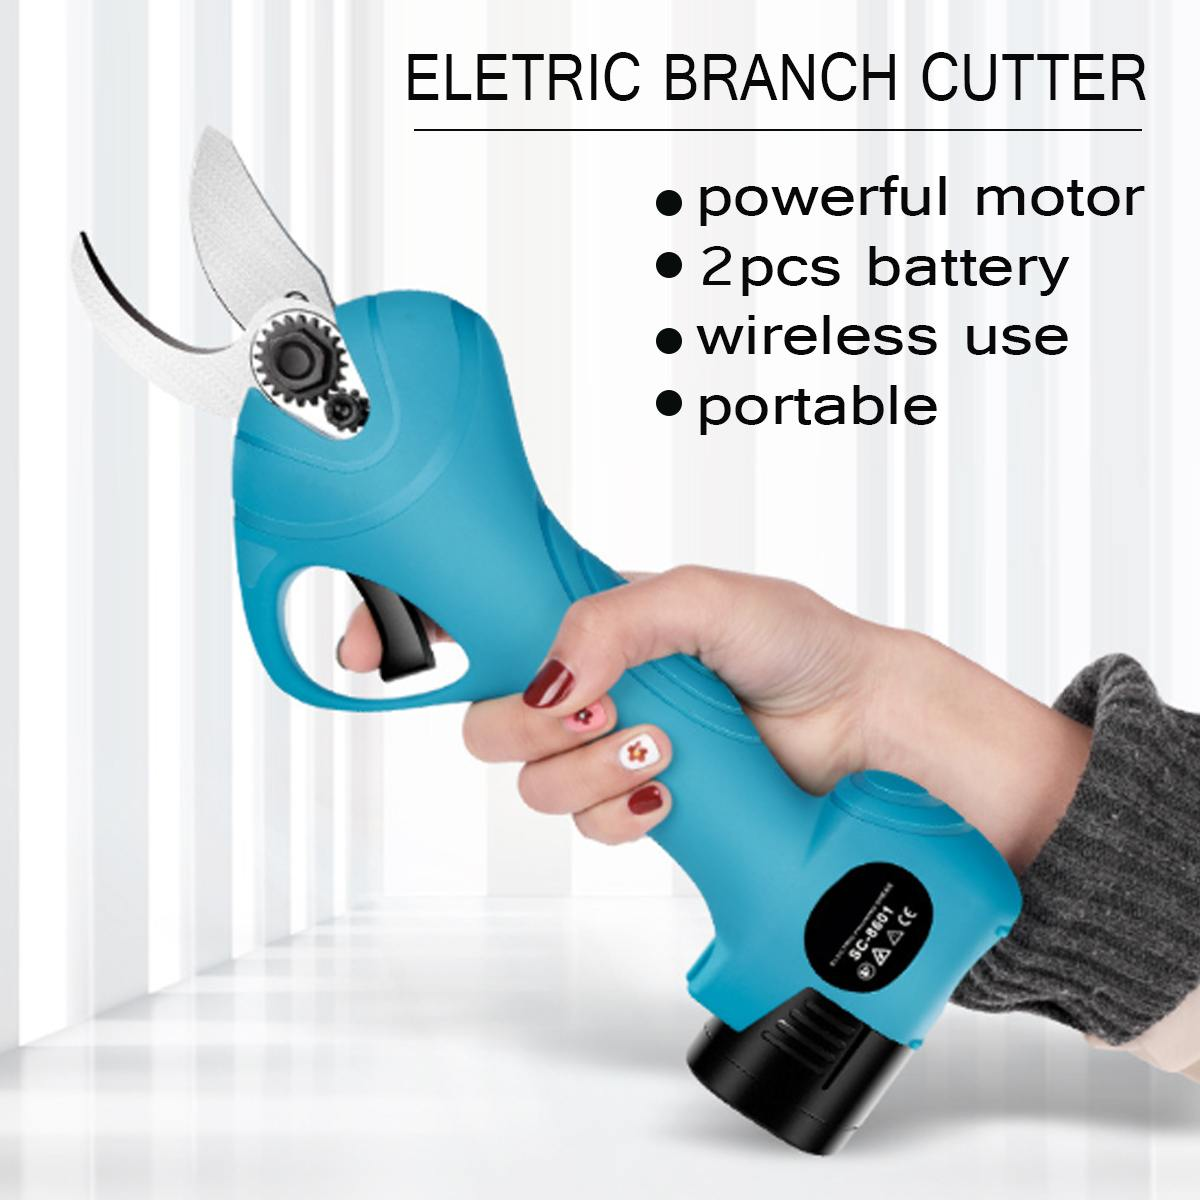 Electric Pruning Shears